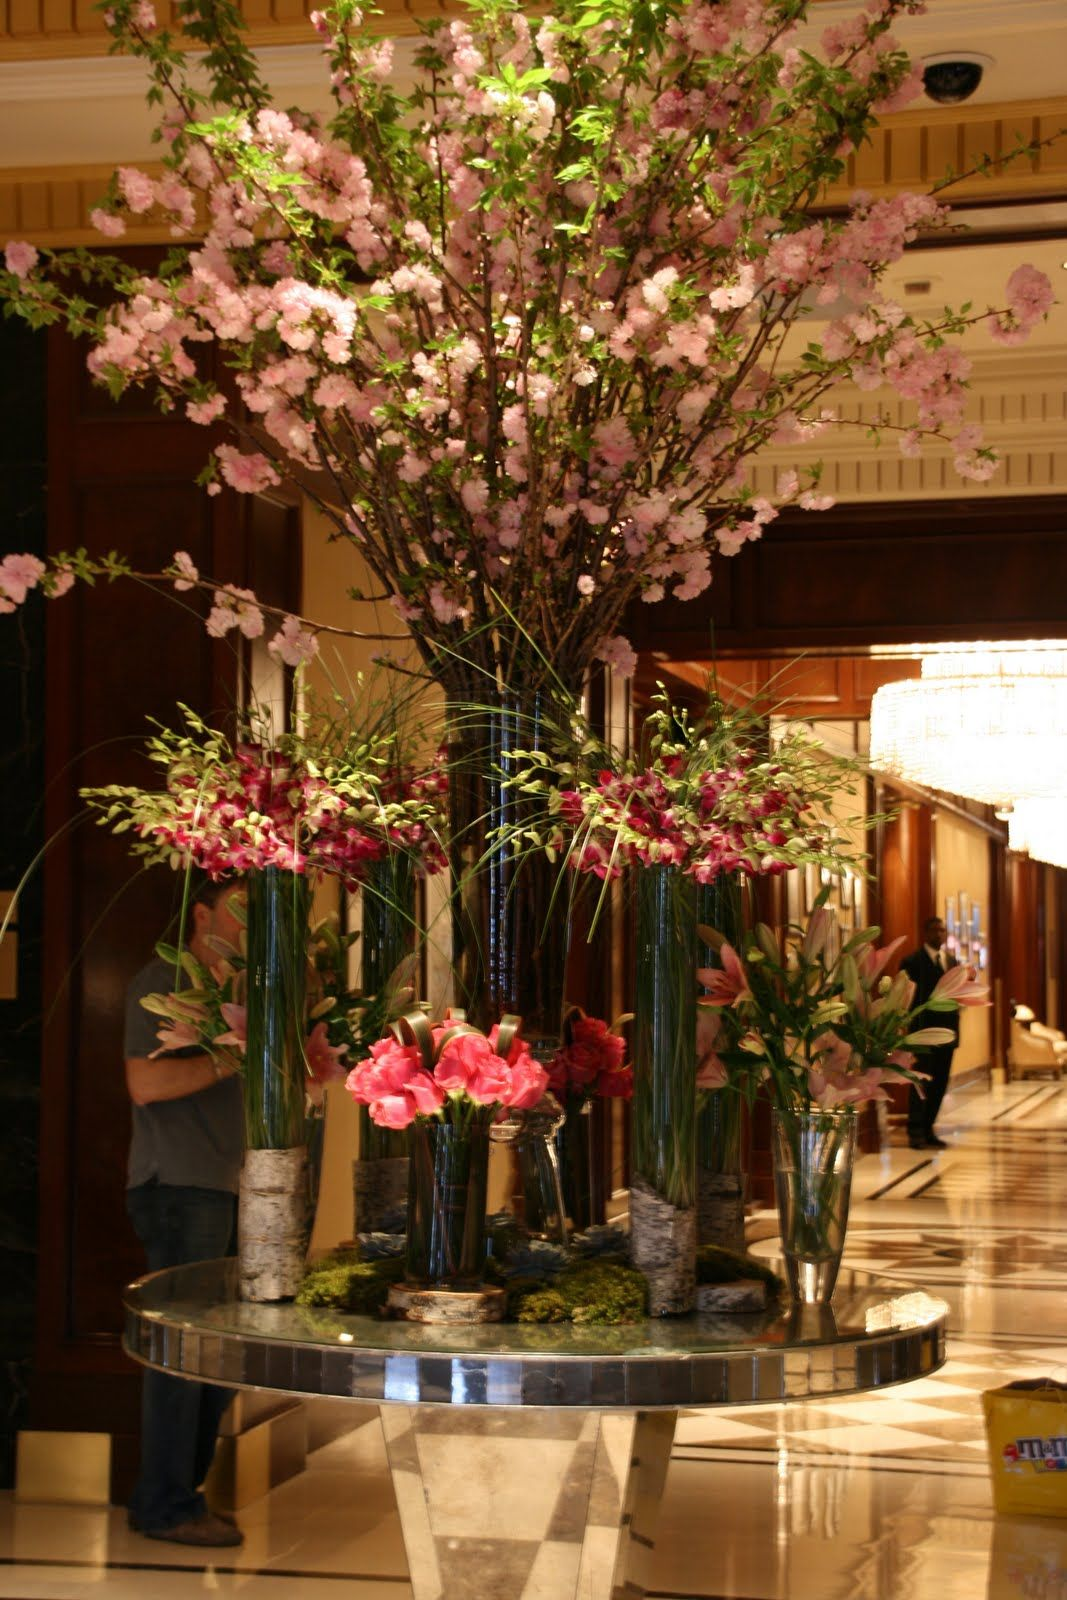 Hotel Foyer Flowers : Hotel lobby pin for pinterest pond fountain